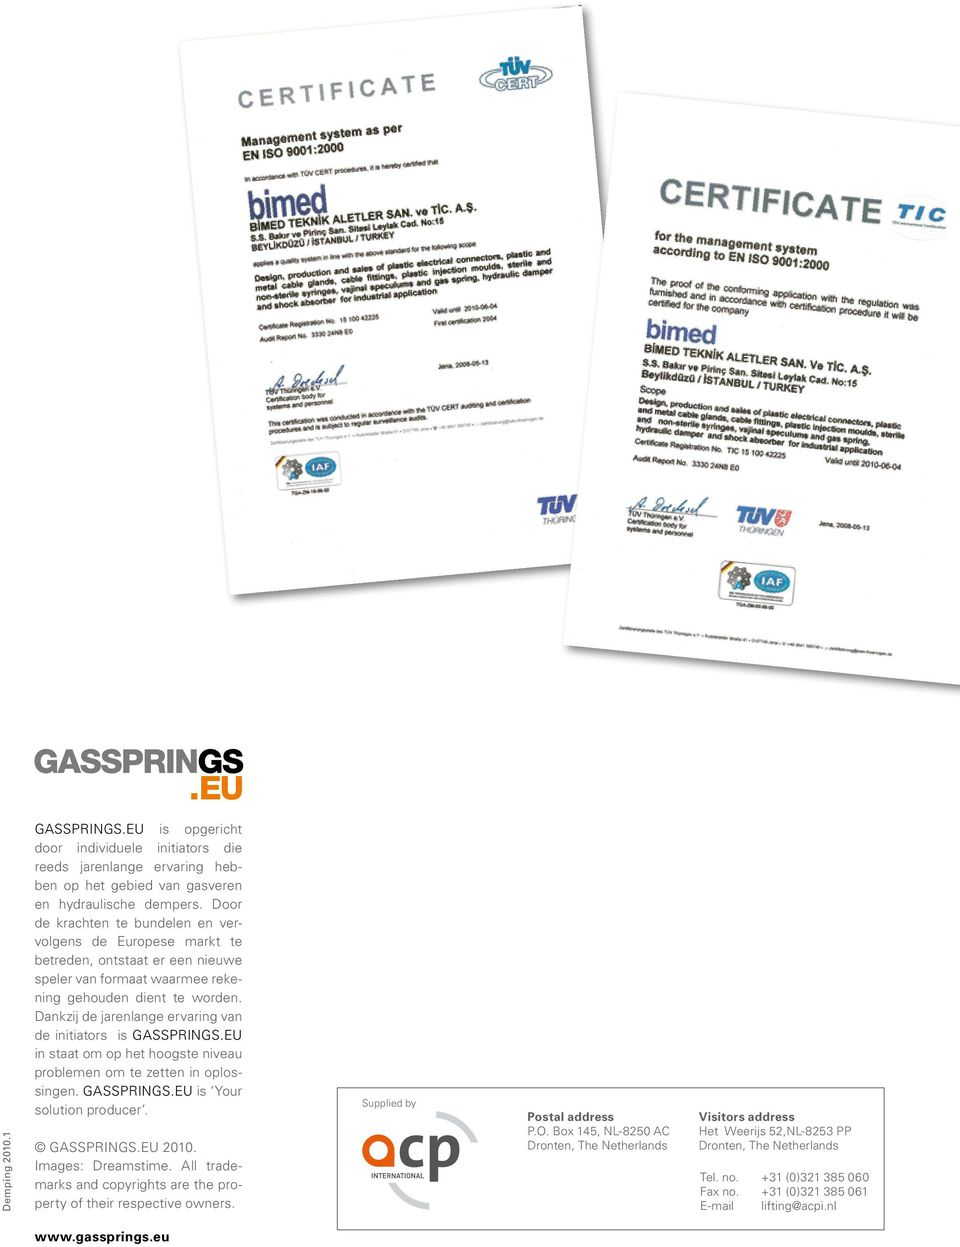 Dankzij de jarenlange ervaring van de initiators is GASSPRINGS.EU in staat om op het hoogste niveau problemen om te zetten in oplossingen. GASSPRINGS.EU is Your solution producer. GASSPRINGS.EU 2010.